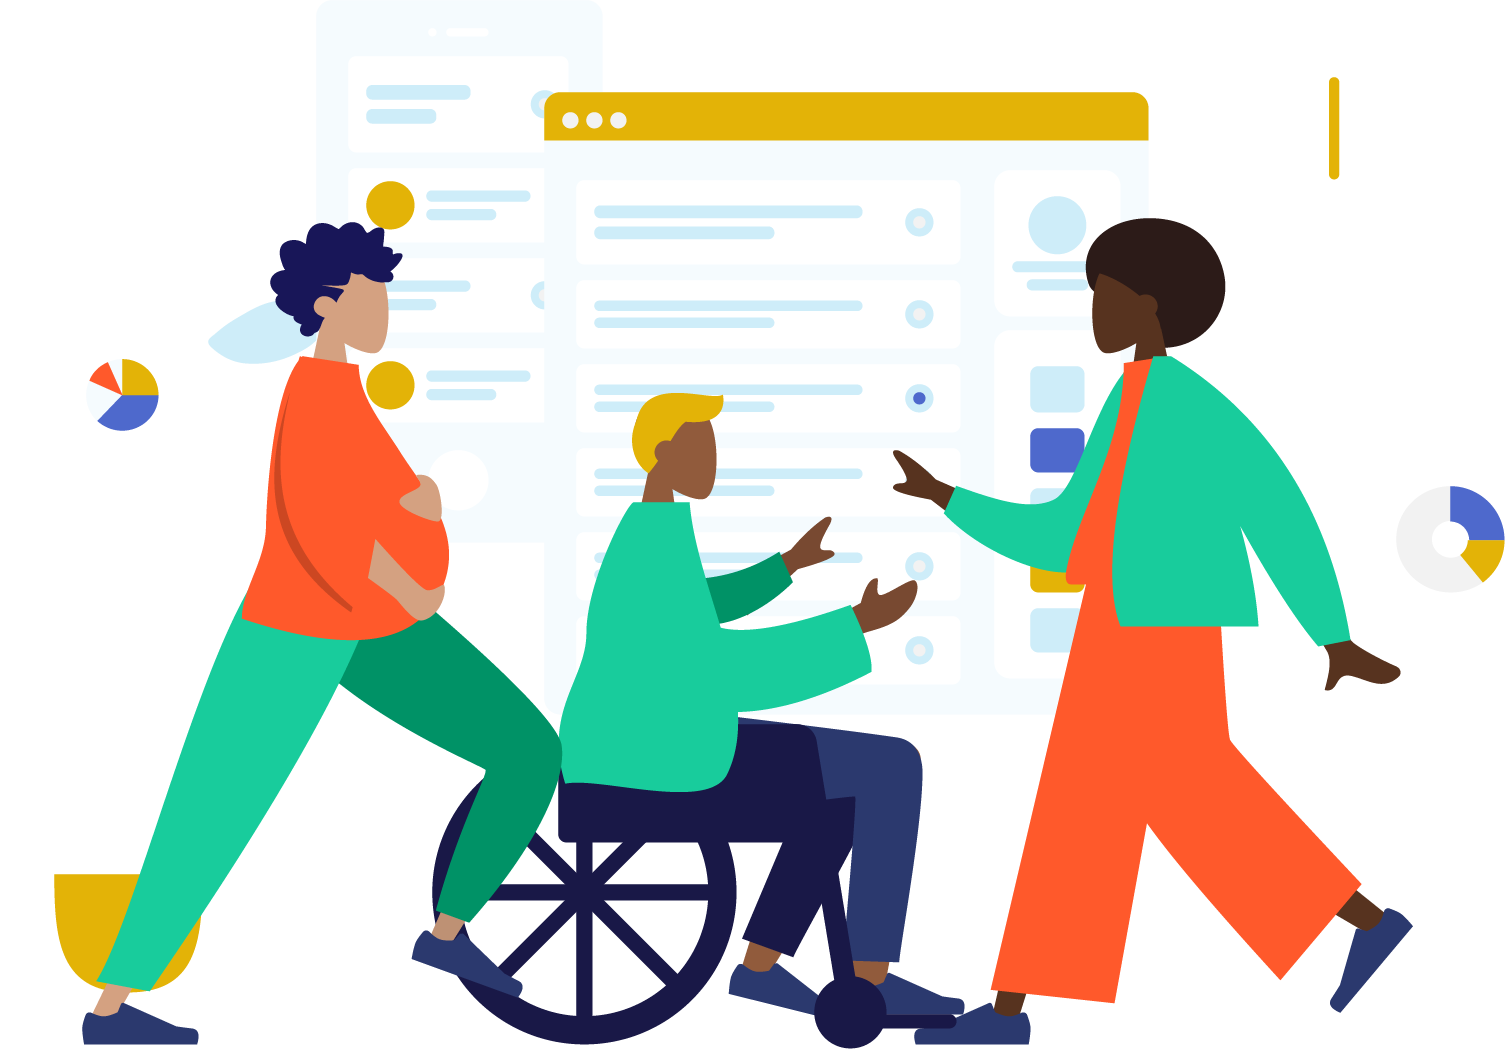 Illustration of 3 people discussing data